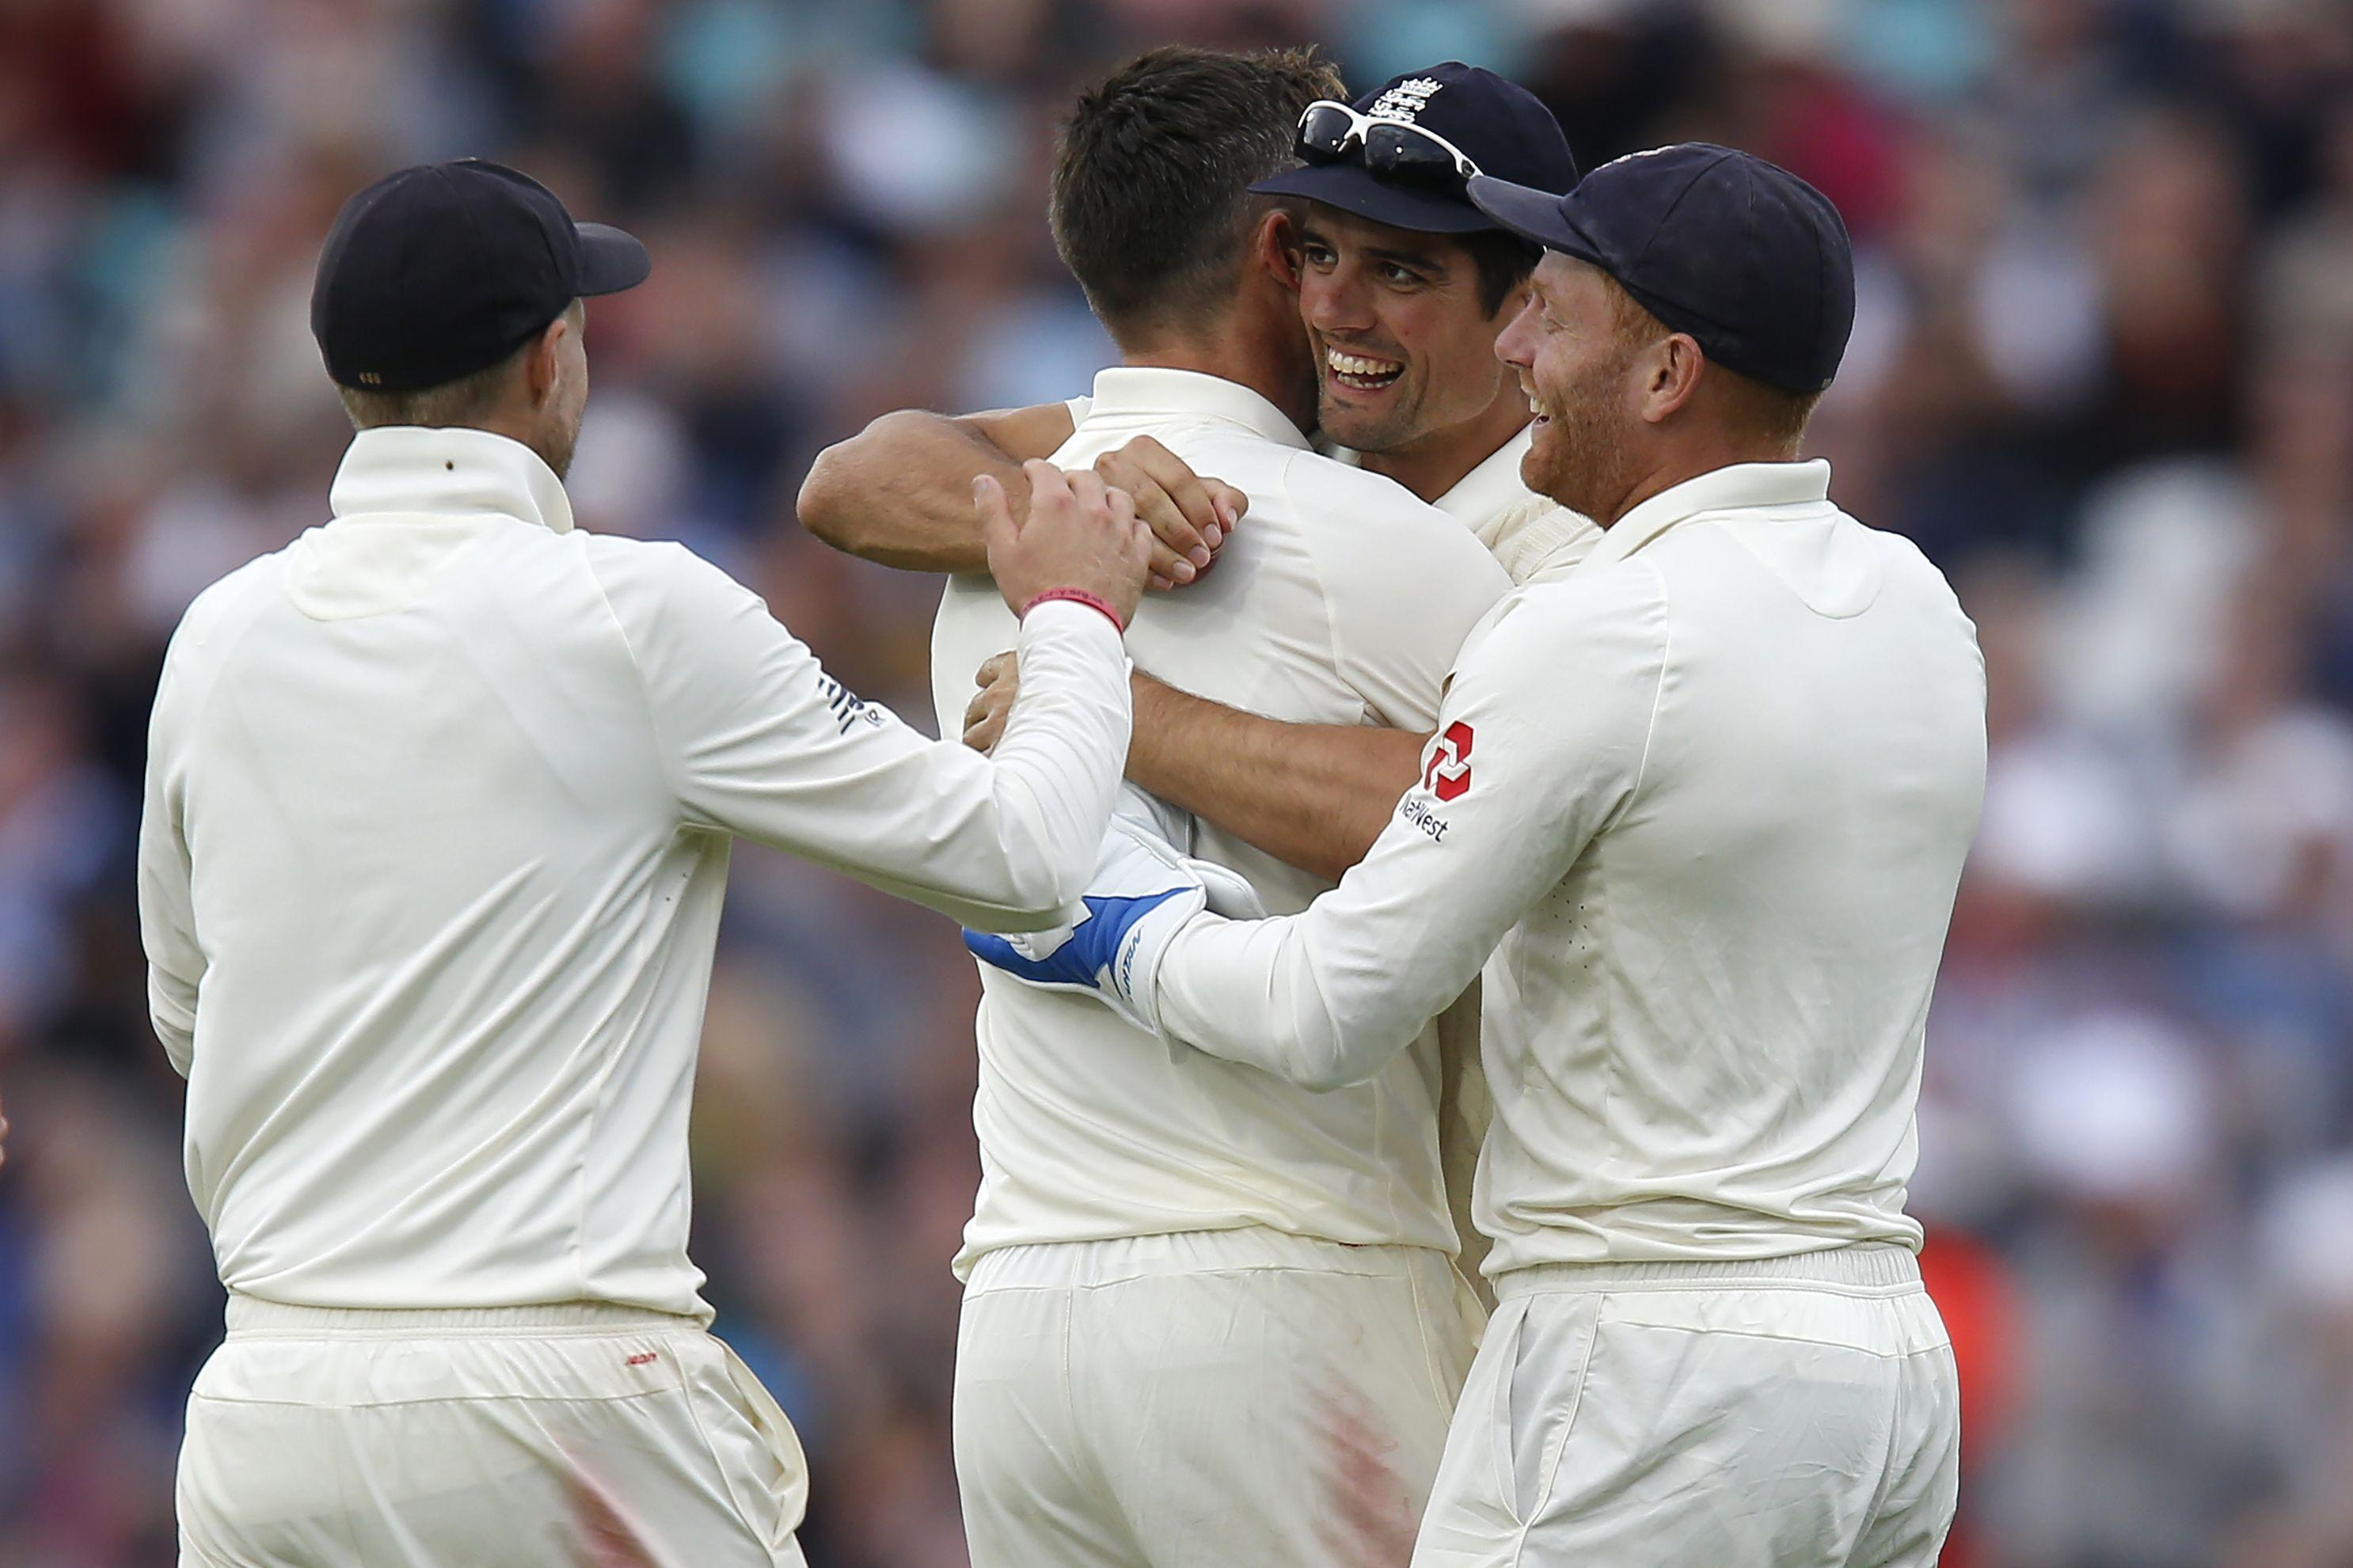 James Anderson celebrates with Joe Root, Alastair Cook and Jonny Bairstow after taking the wicket of India's Ajinkya Rahane.